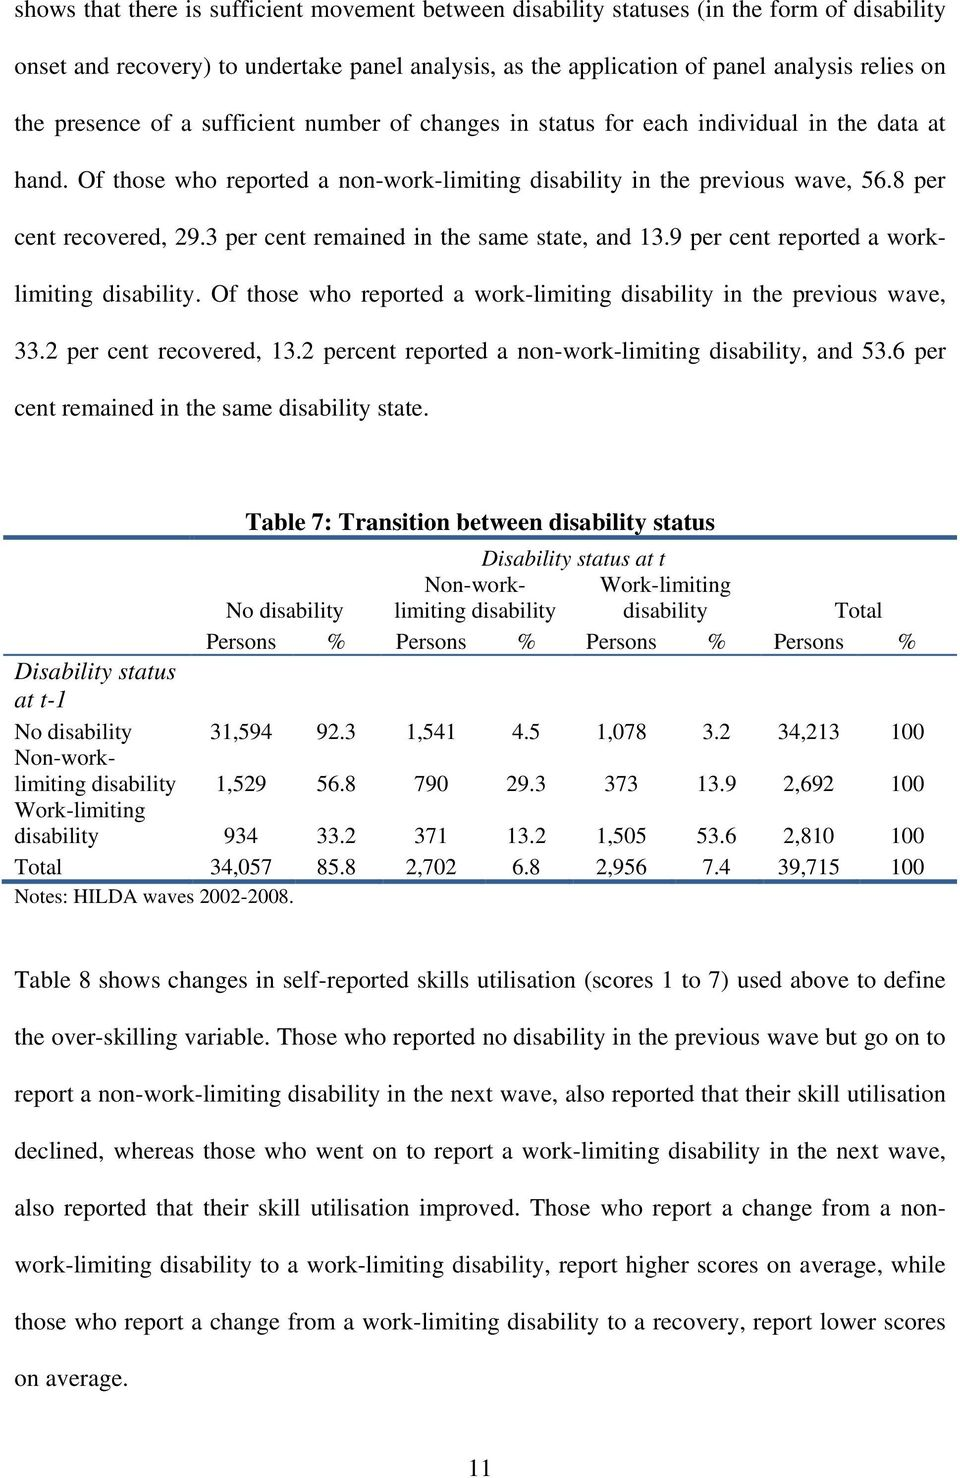 3 per cent remained in the same state, and 13.9 per cent reported a worklimiting disability. Of those who reported a work-limiting disability in the previous wave, 33.2 per cent recovered, 13.